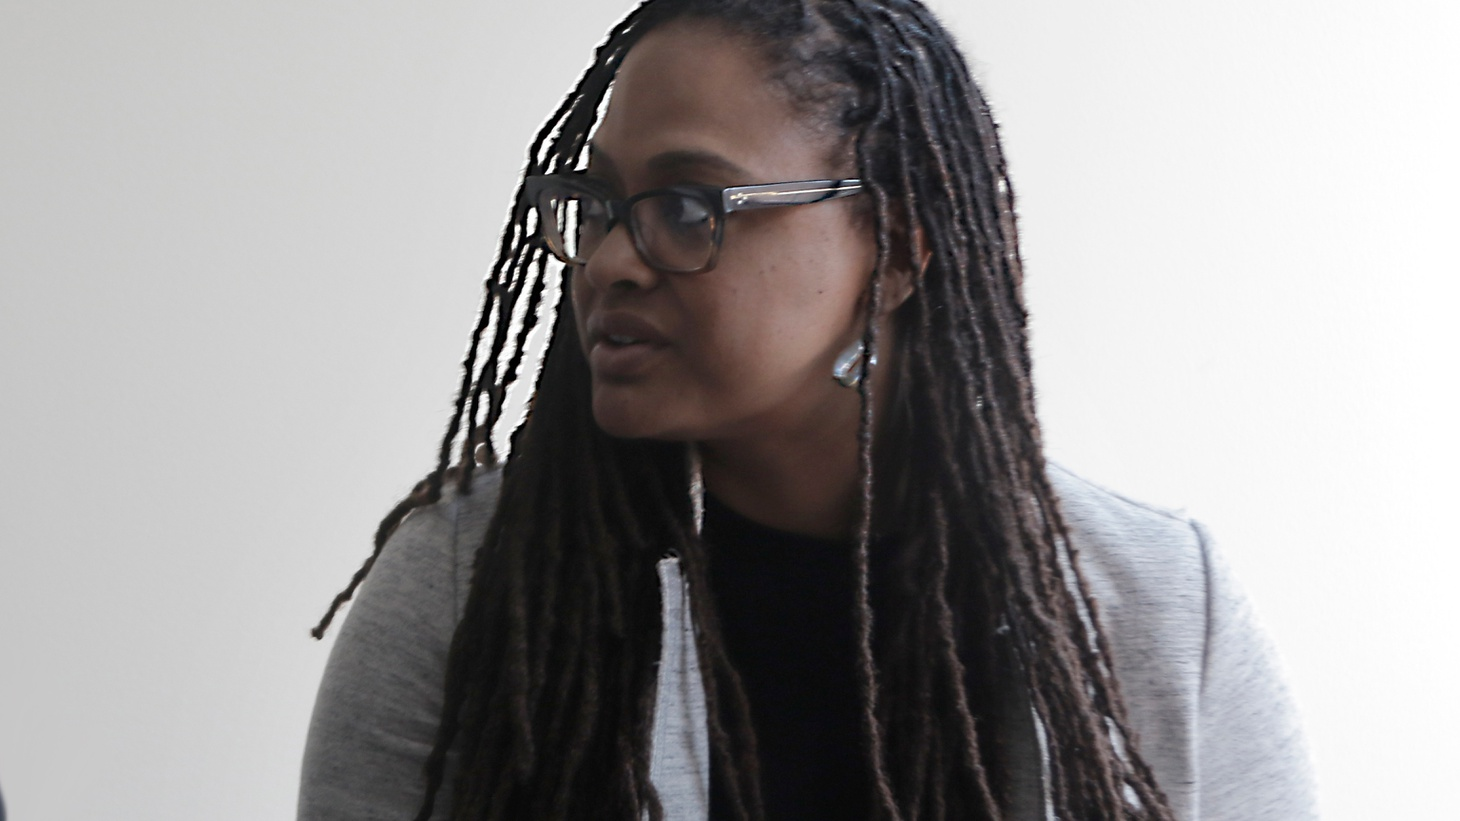 How busy is filmmaker Ava DuVernay? Well, between directing Disney's ' Wrinkle in Time, executive producing Queen Sugar on OWN and working the awards circuit for her Oscar-nominated doc 13th...really busy. She tells us why she's taken it all on, and how 13th is resonating with audiences post-election in ways she never could have predicted.